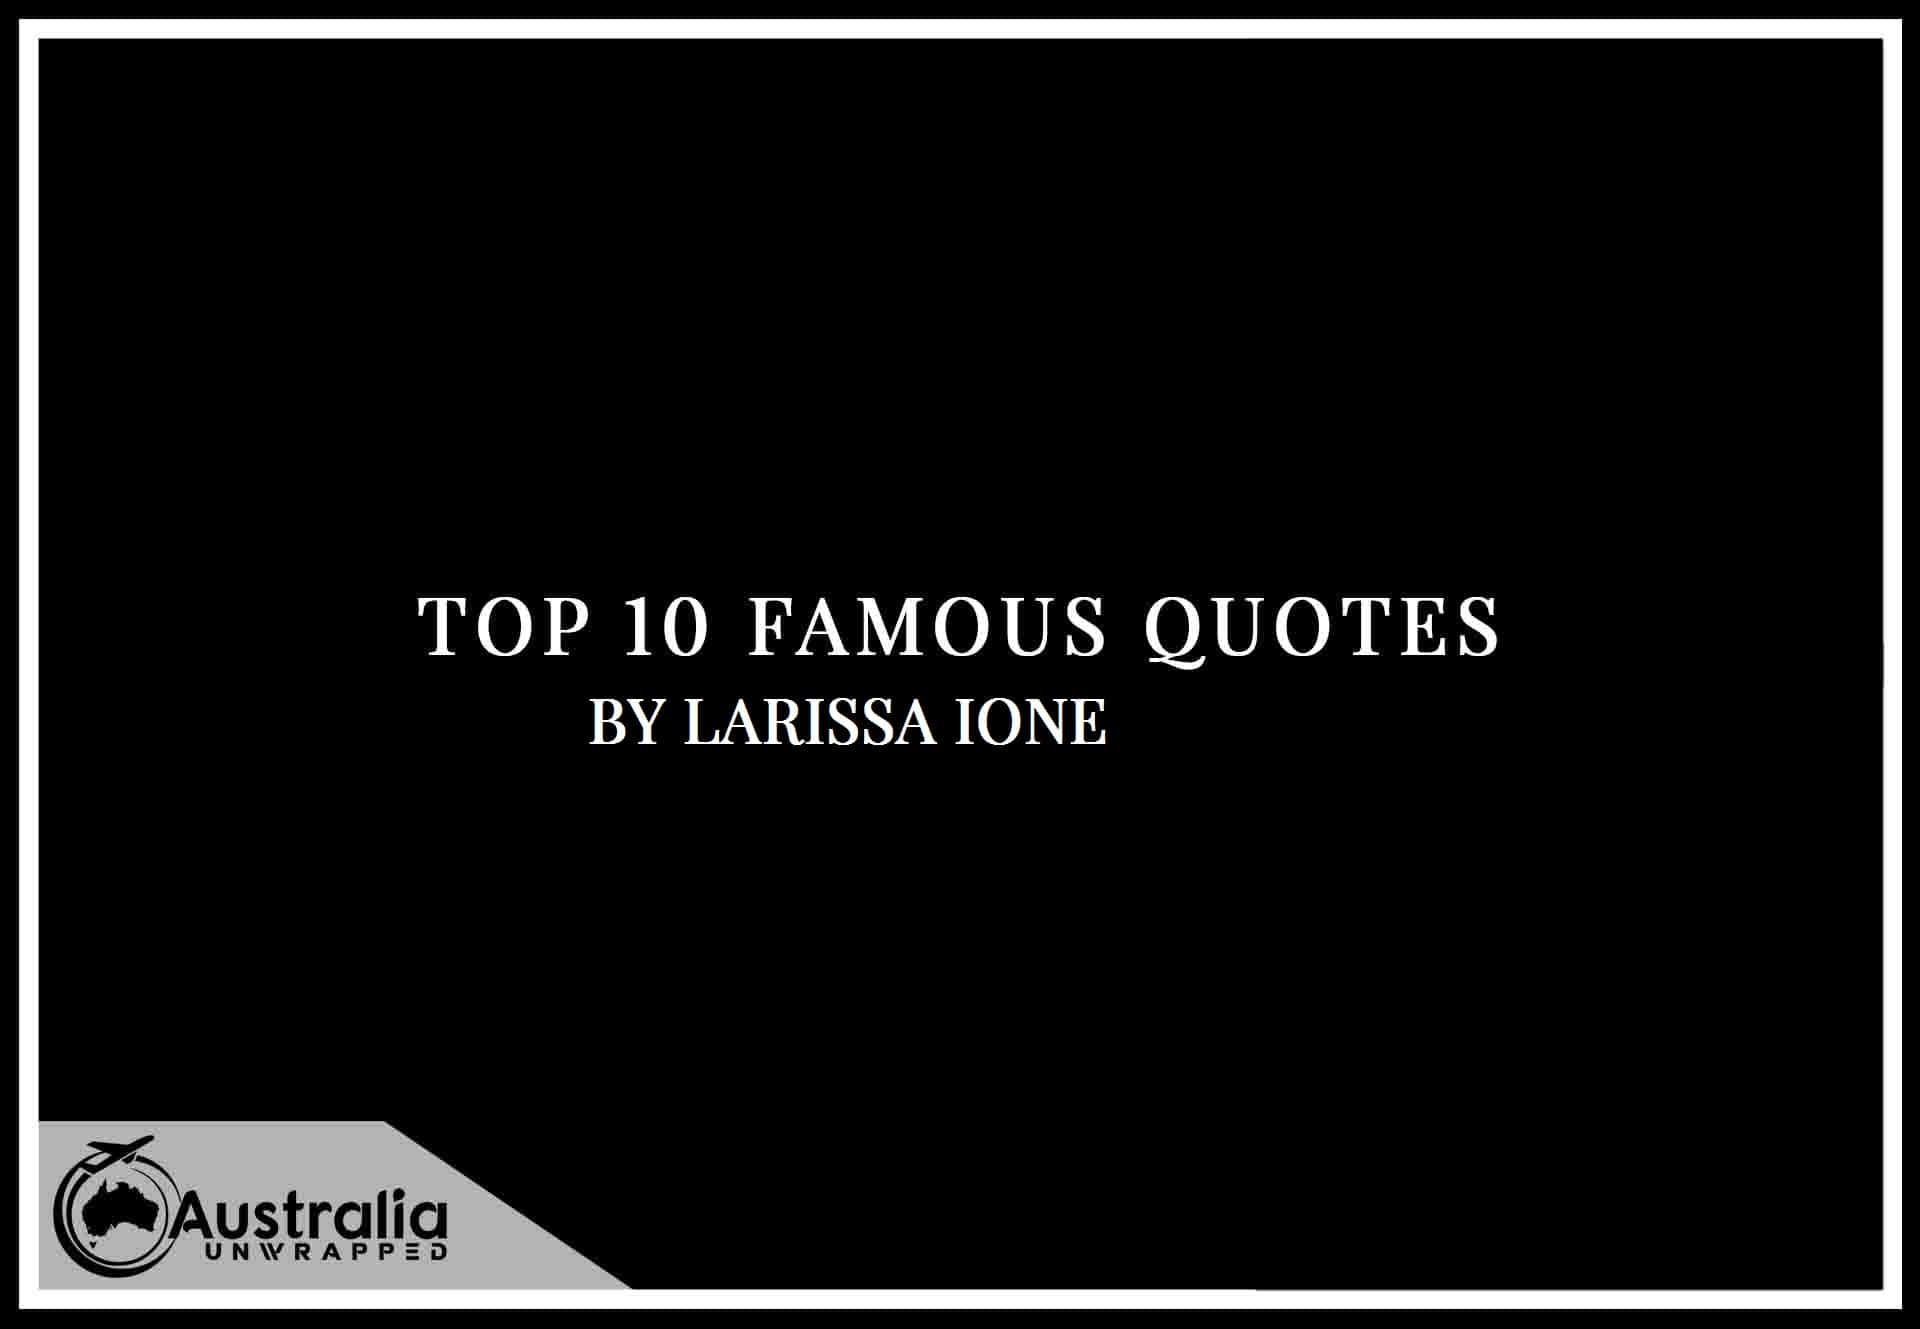 Larissa Ione's Top 10 Popular and Famous Quotes